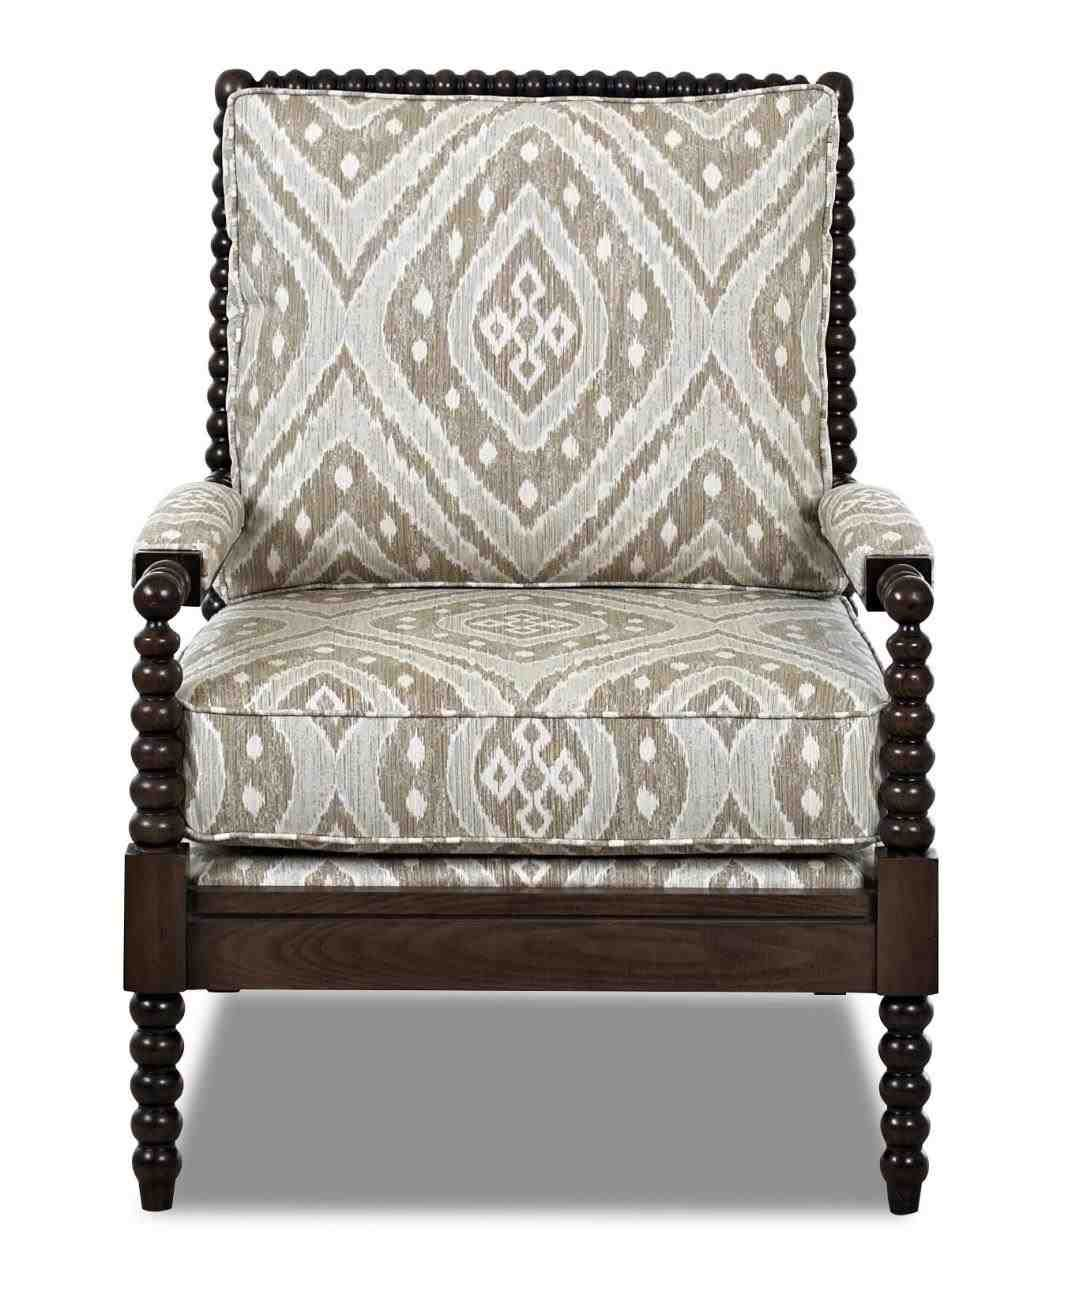 New Post Accent Chairs With Wooden Arms